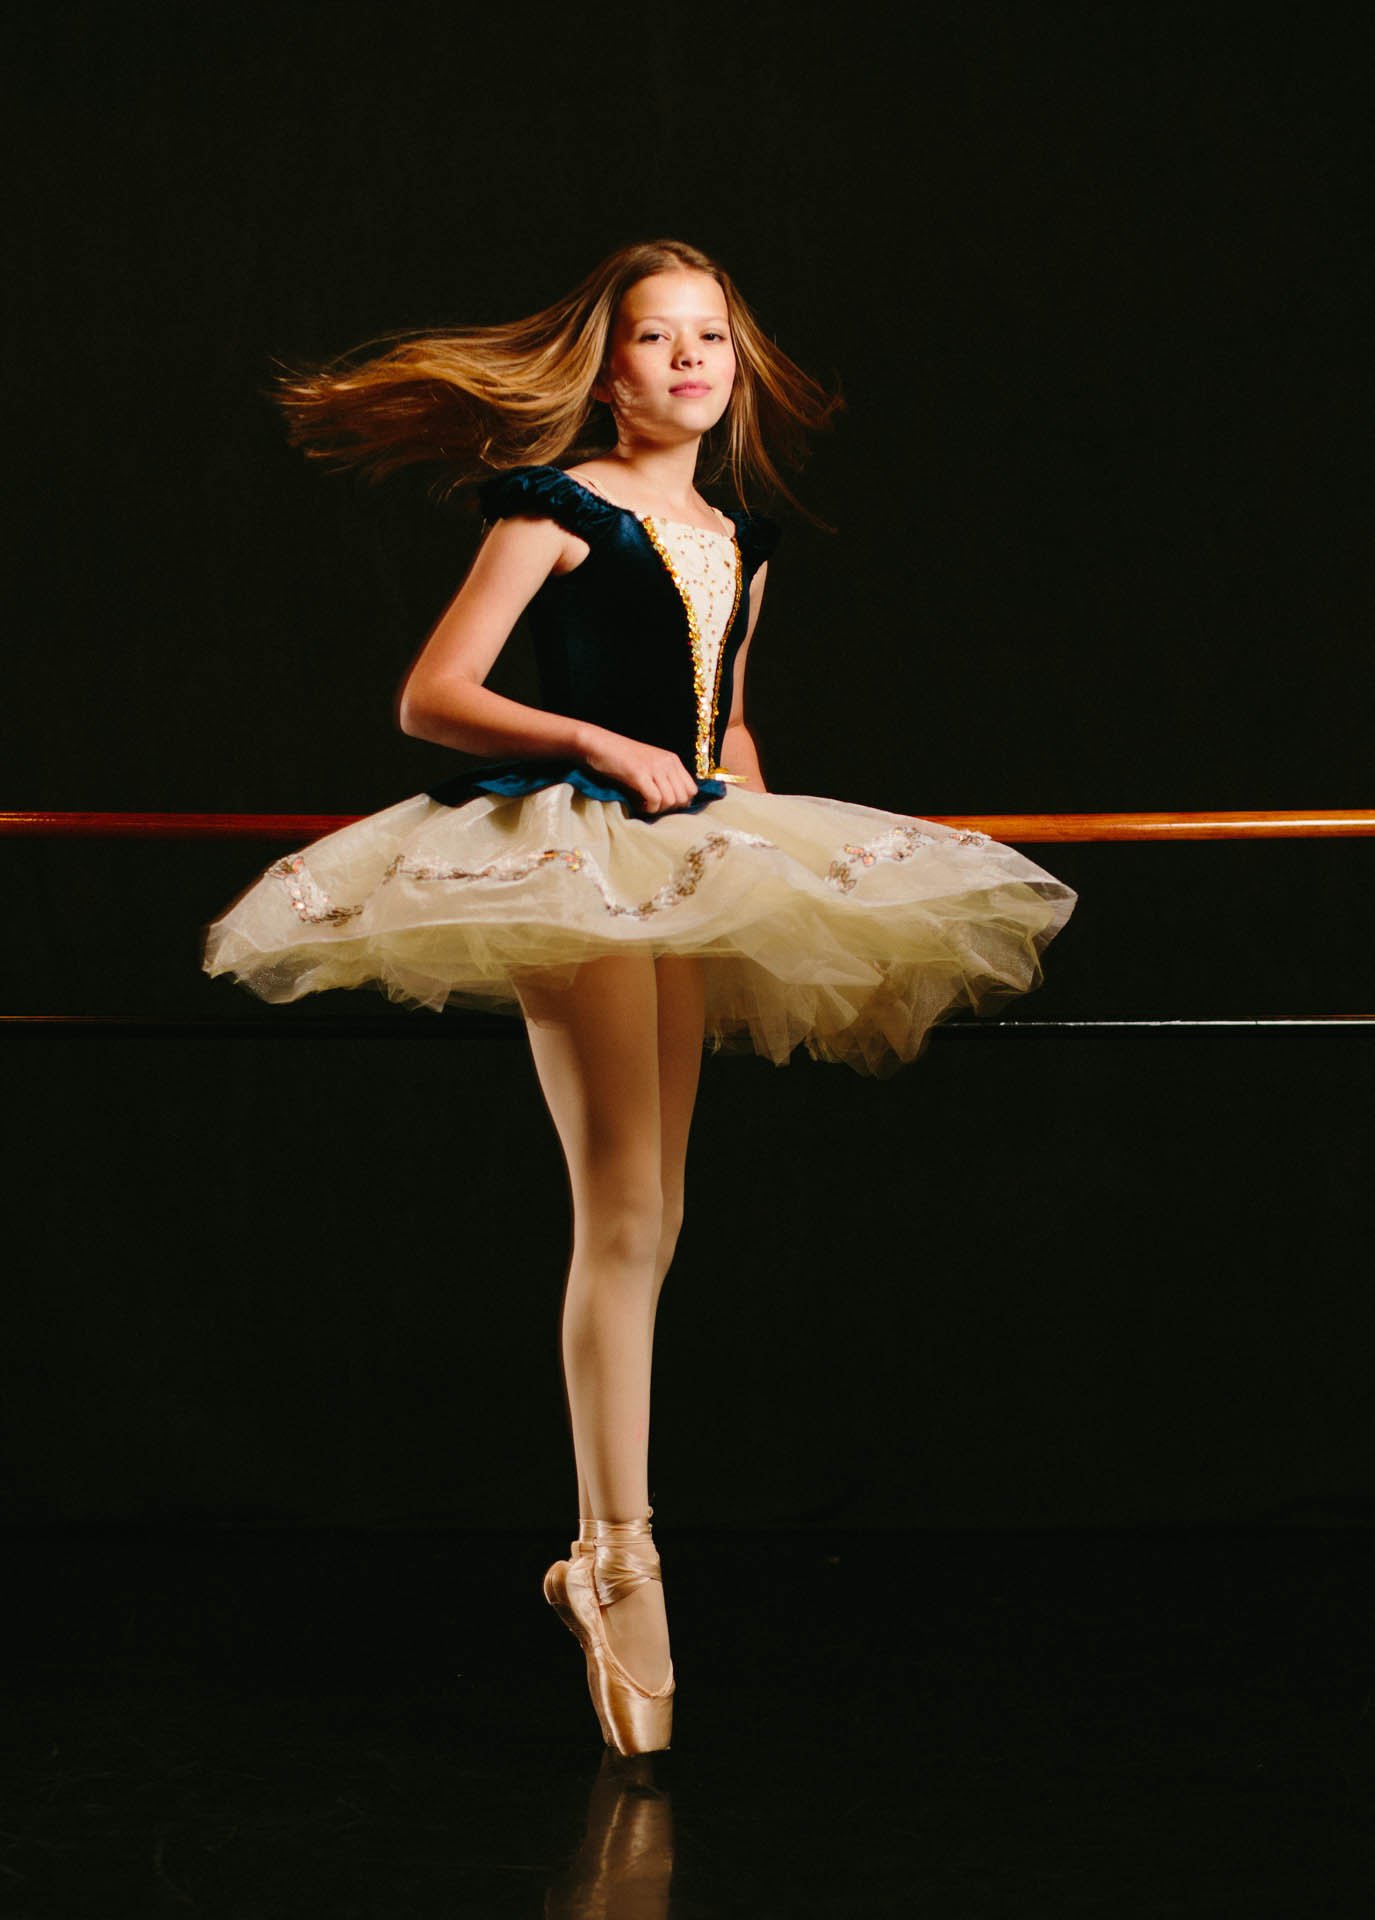 ann-ballerina-spinning-on-pointe-shoes-tutu-8718